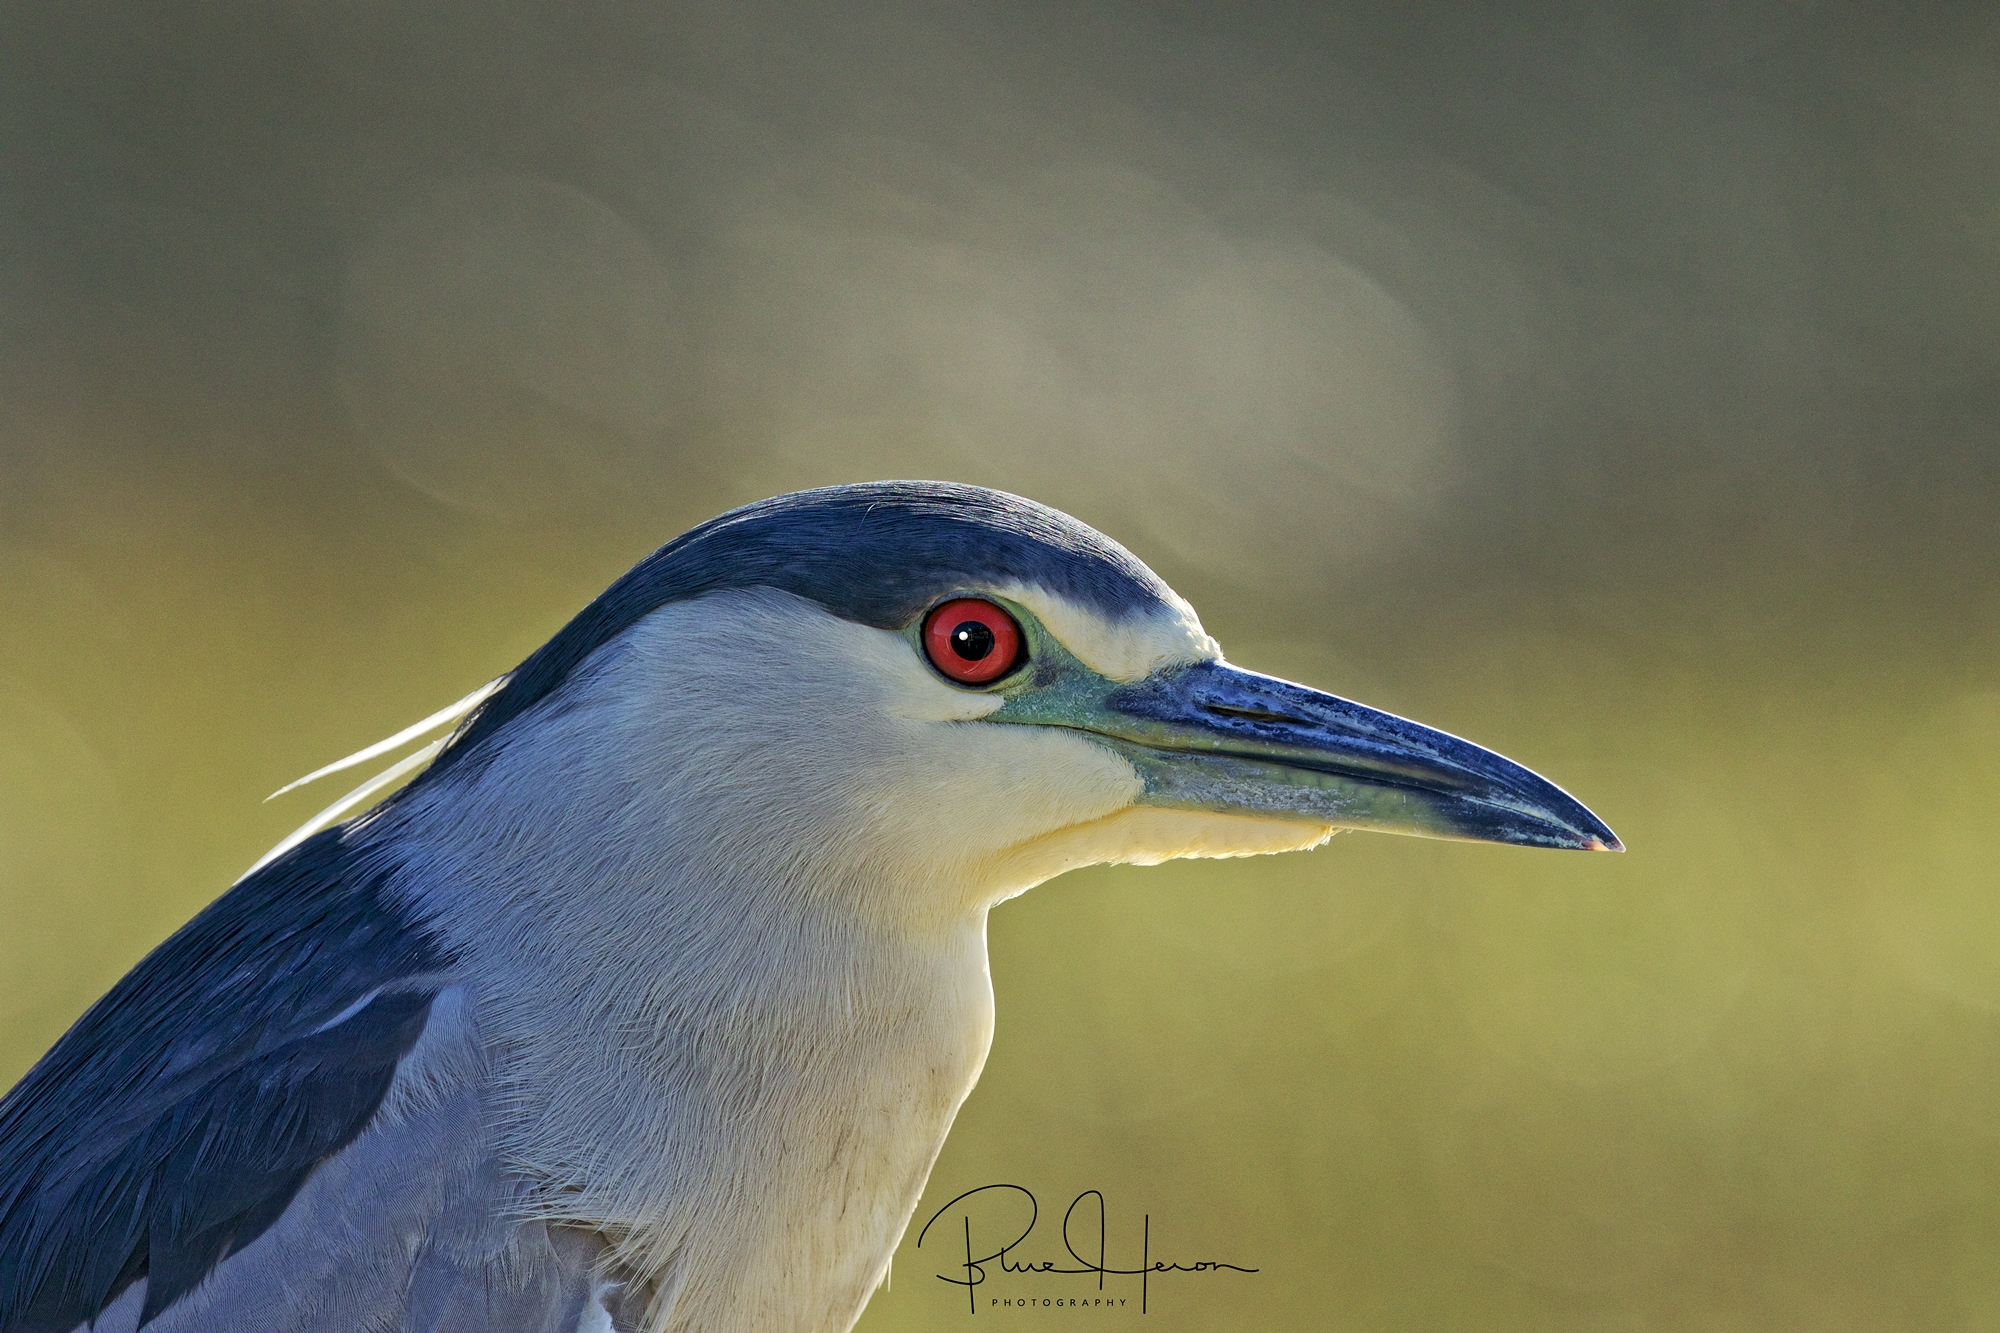 Wide eyed fear is evident in the eye of the Heron...